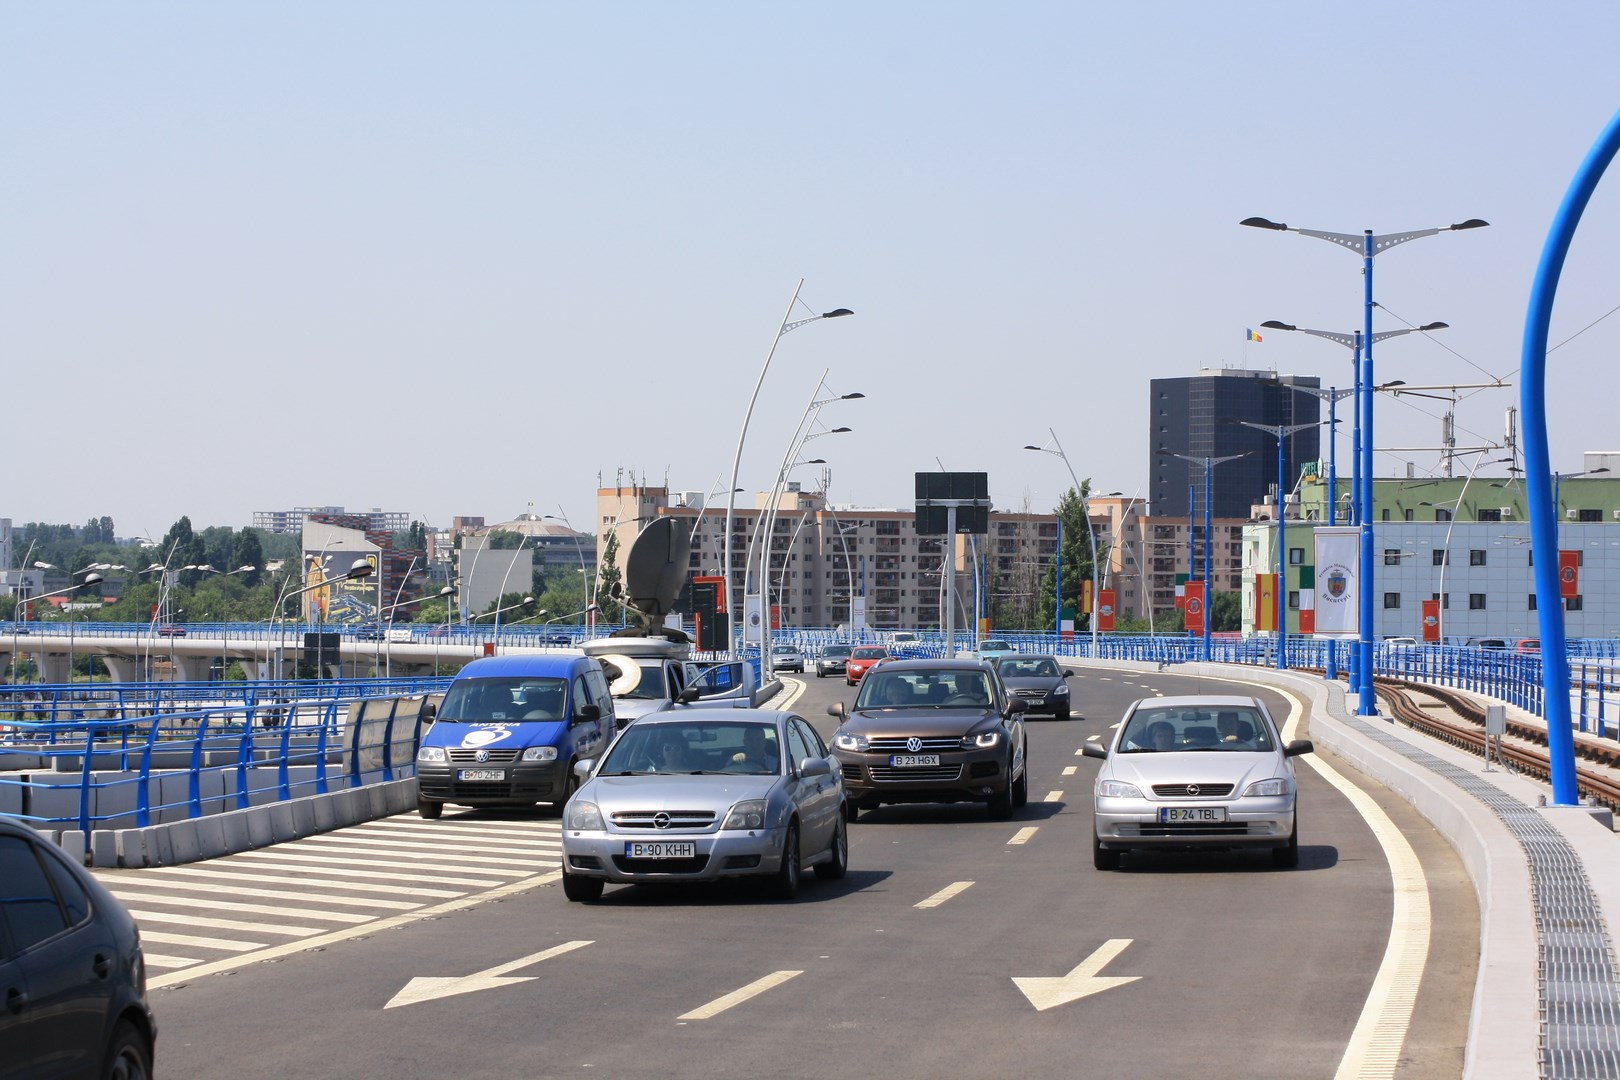 Vehicle traffic on the Basarab Viaduct